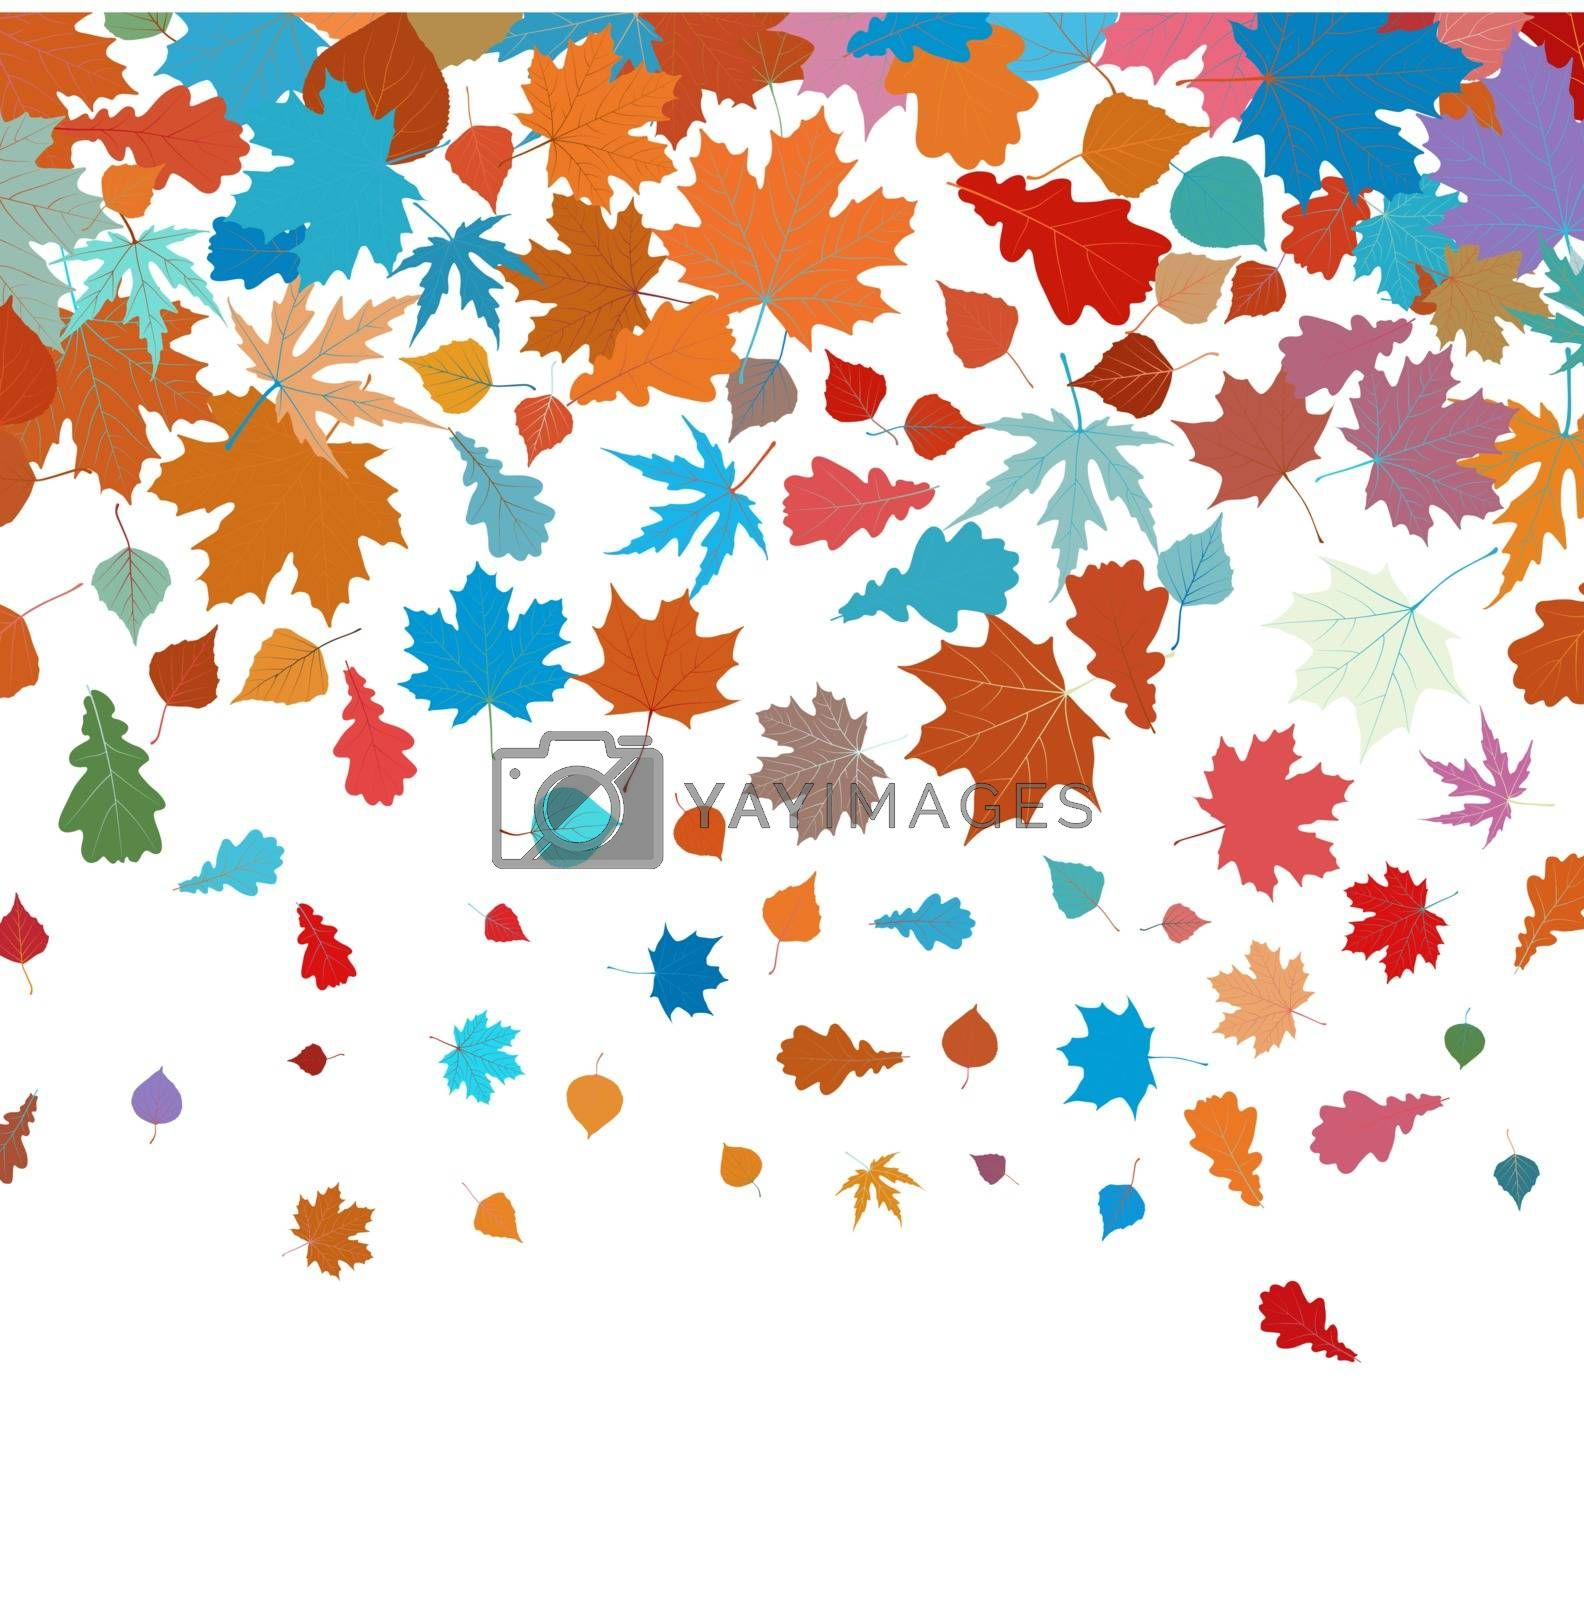 Autumn leafs abstract background. EPS 8 by Petrov_Vladimir